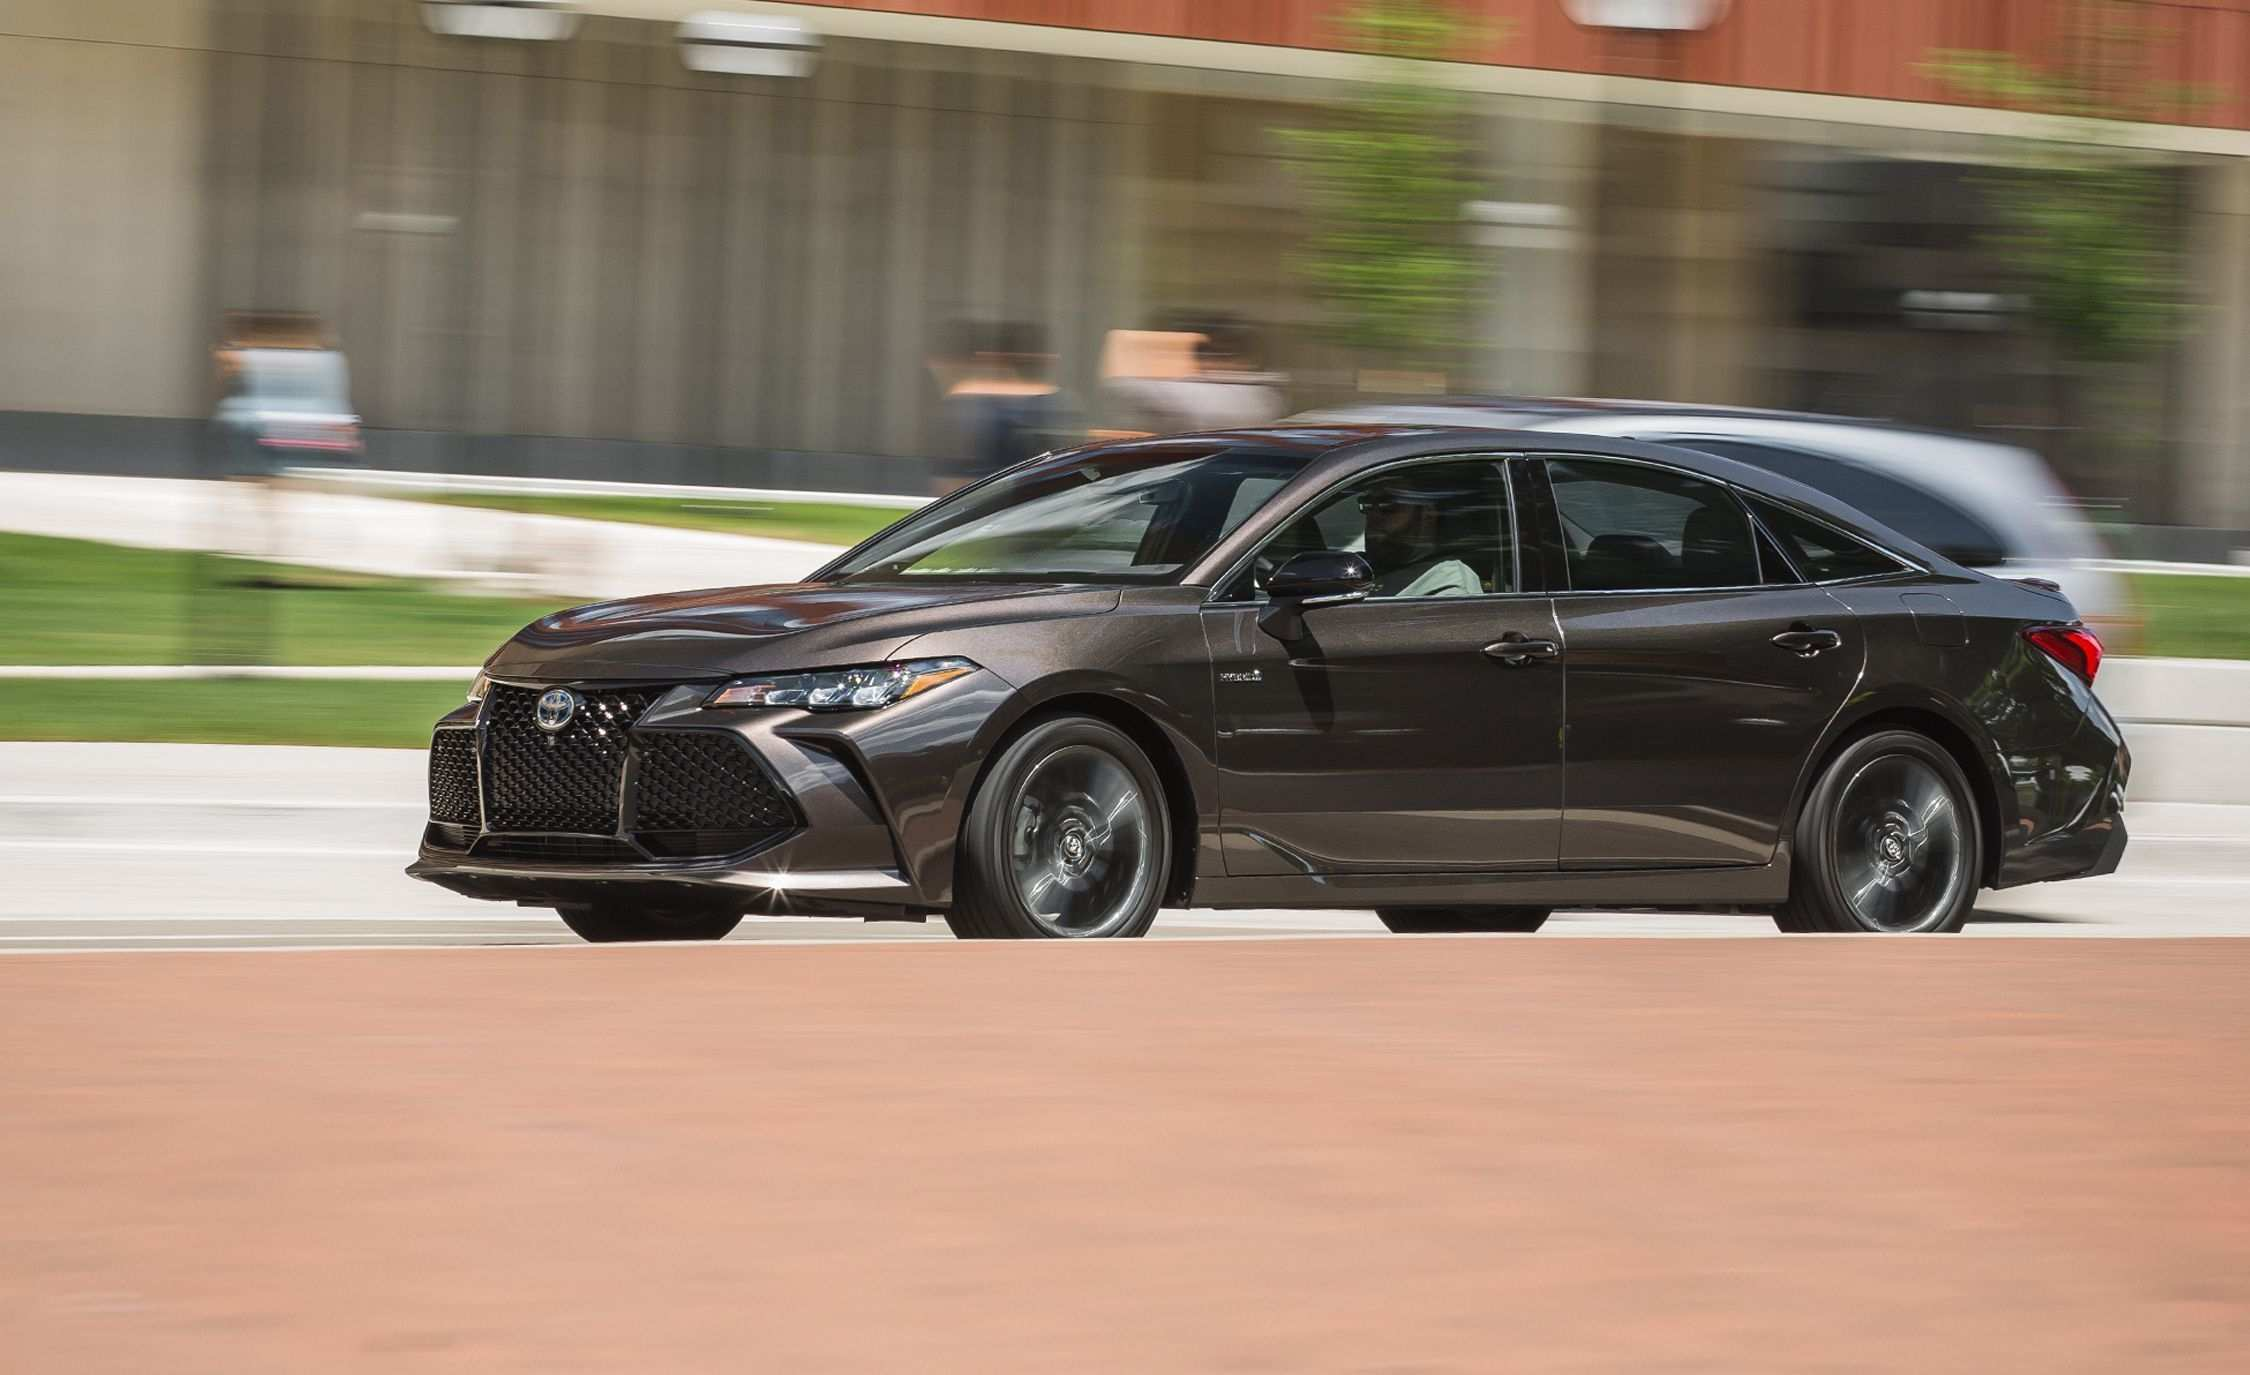 52 Concept of New Toyota Avalon 2019 Review Exterior And Interior Review New Review with New Toyota Avalon 2019 Review Exterior And Interior Review